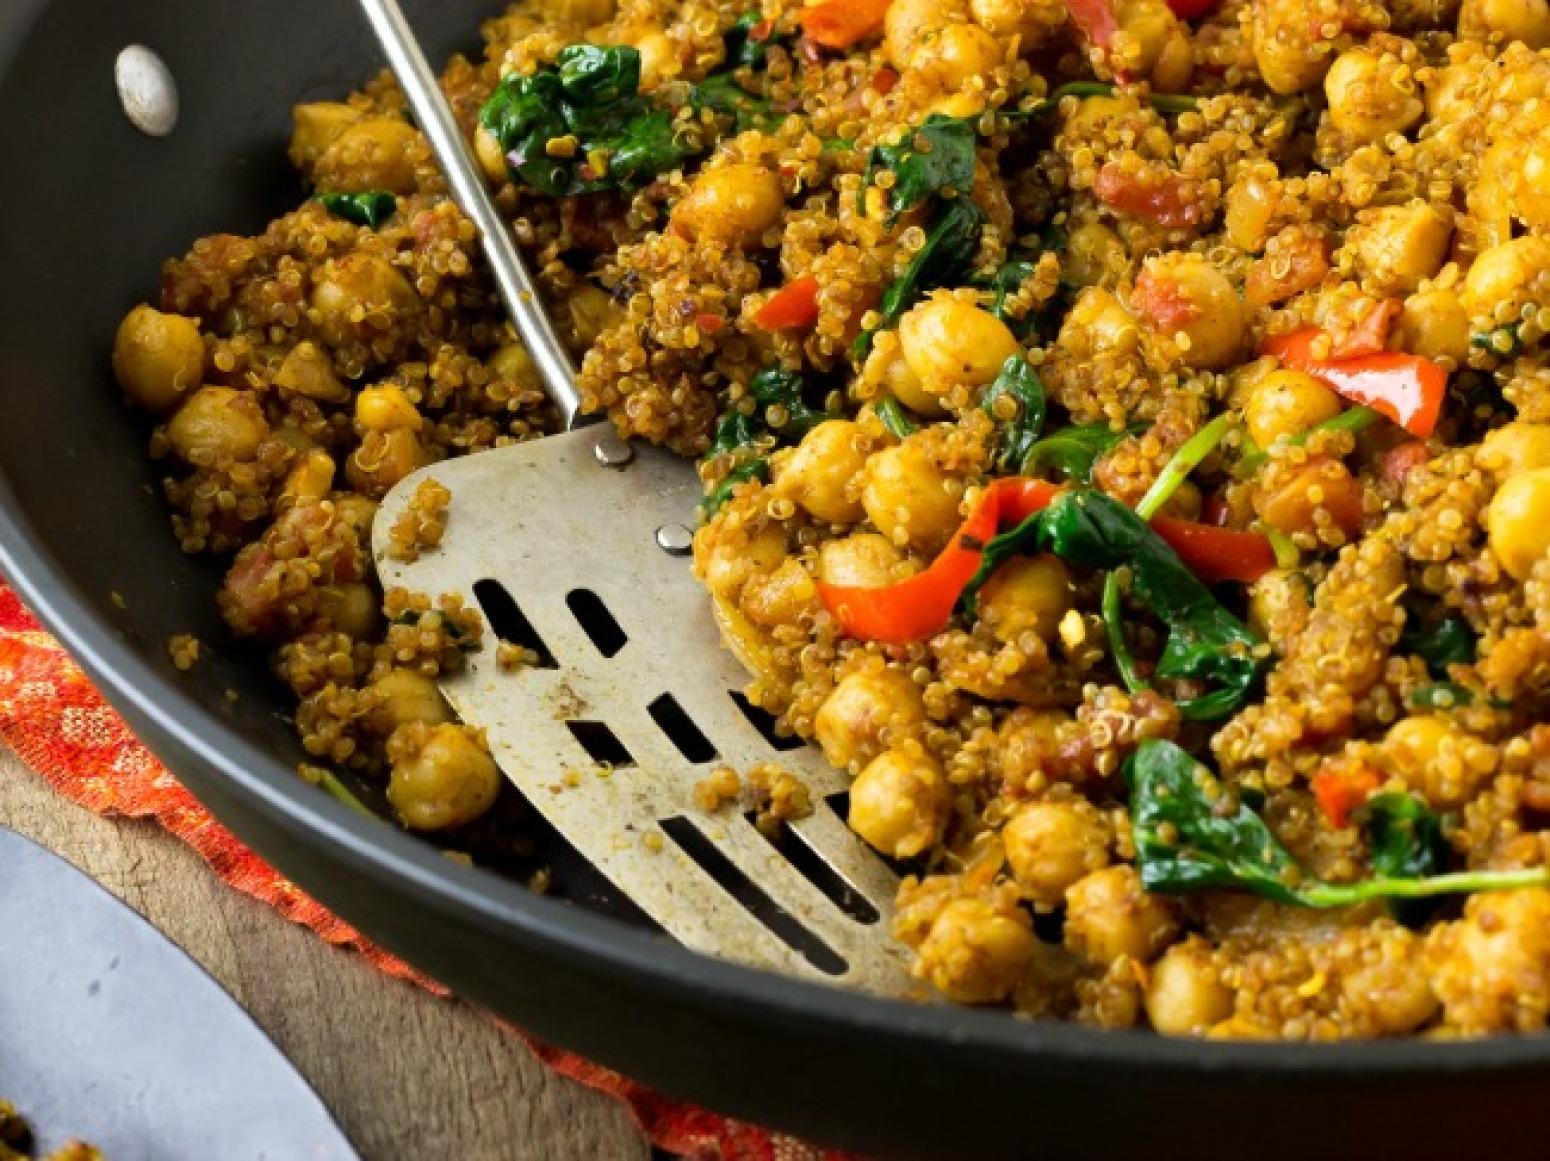 Indian Quinoa and Chickpea Stir Fry Recipe | Just A Pinch Recipes